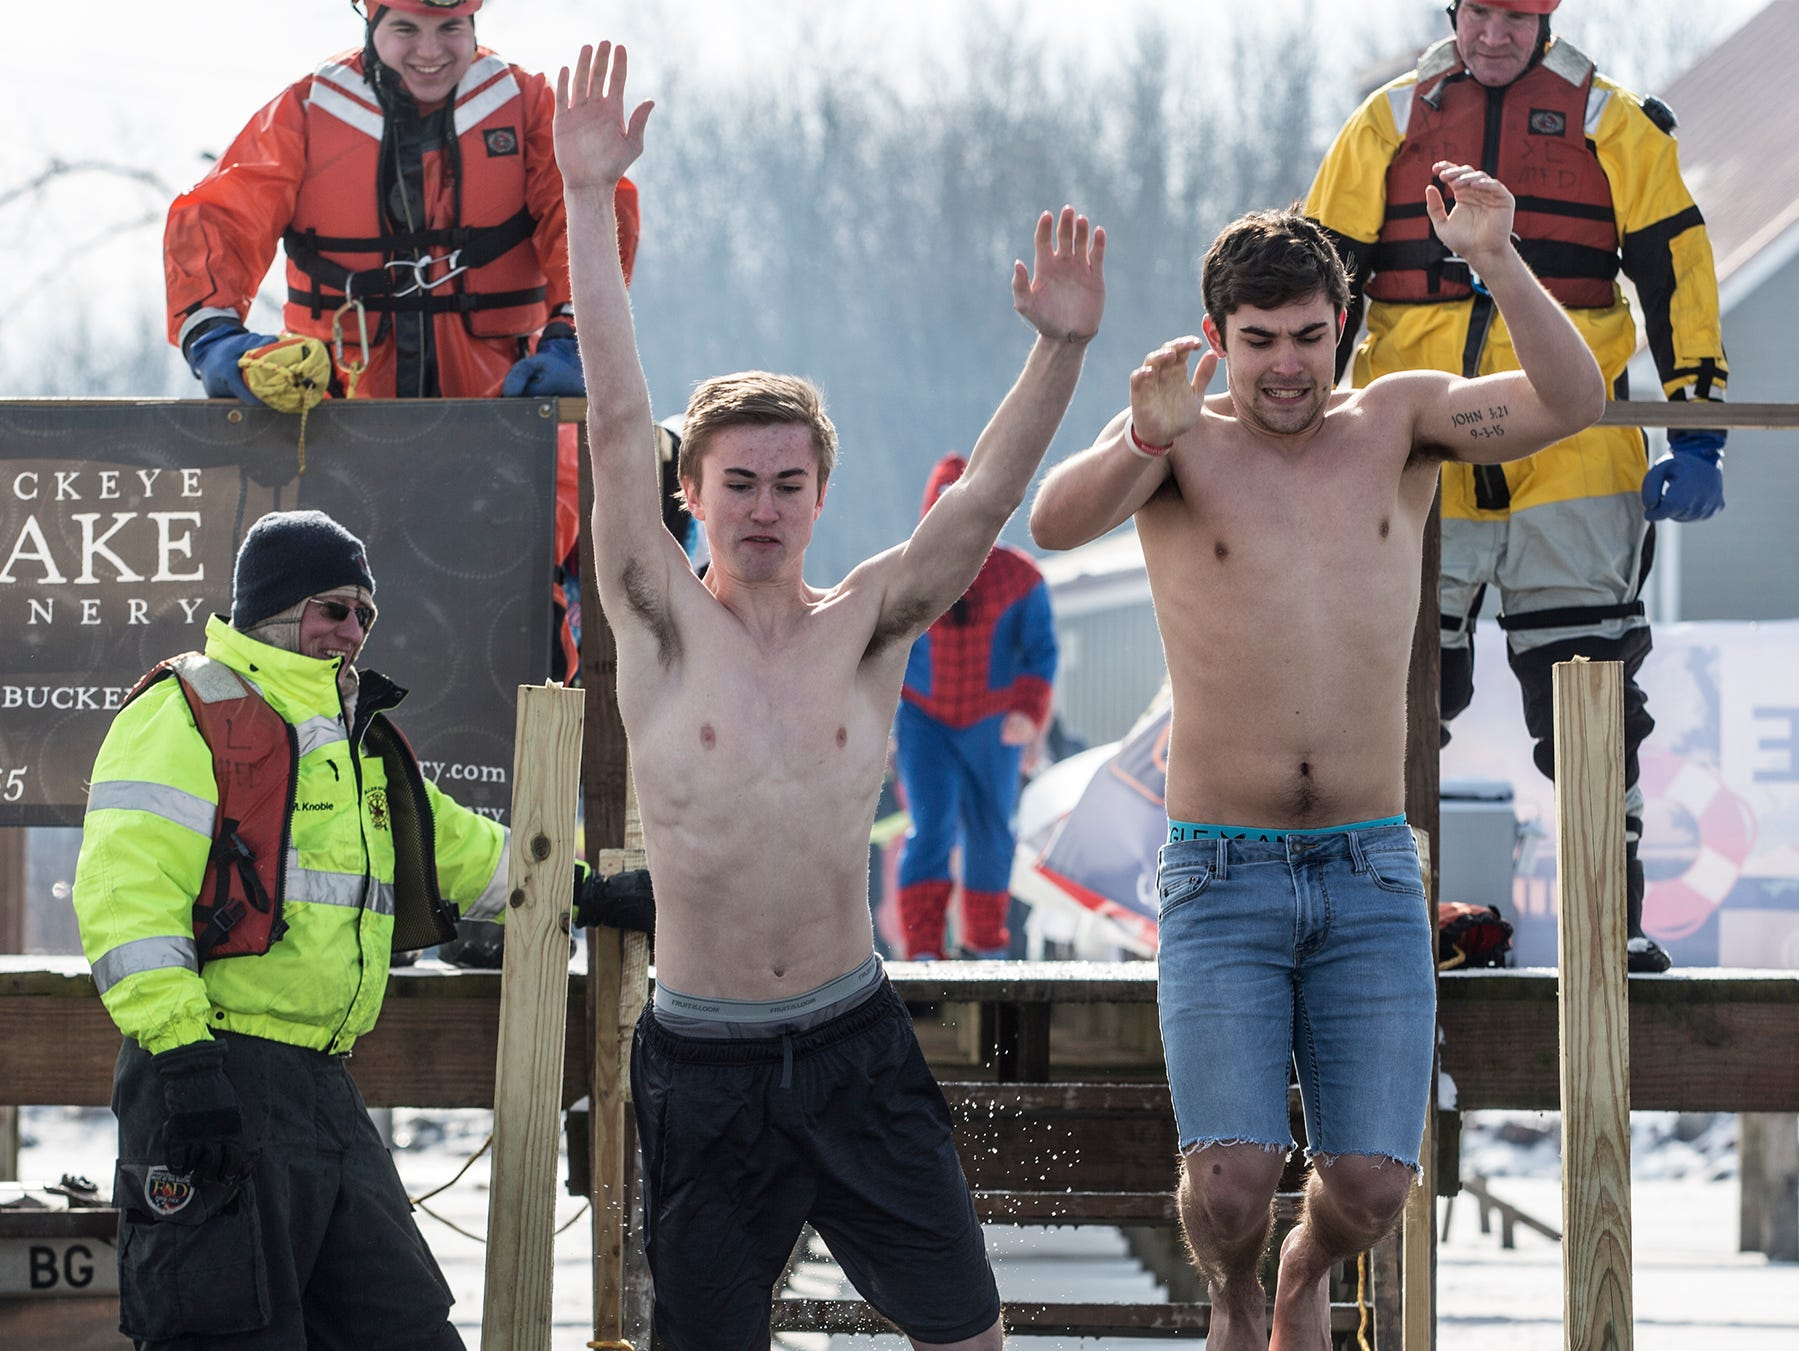 Around 20 people walked down the pier at Buckeye Lake Winery to jump into Buckeye Lake Sunday for the annual Polar Plunge. Crowds gathered on the lake around an opening cut into the ice to cheer on those brave enough top jump.